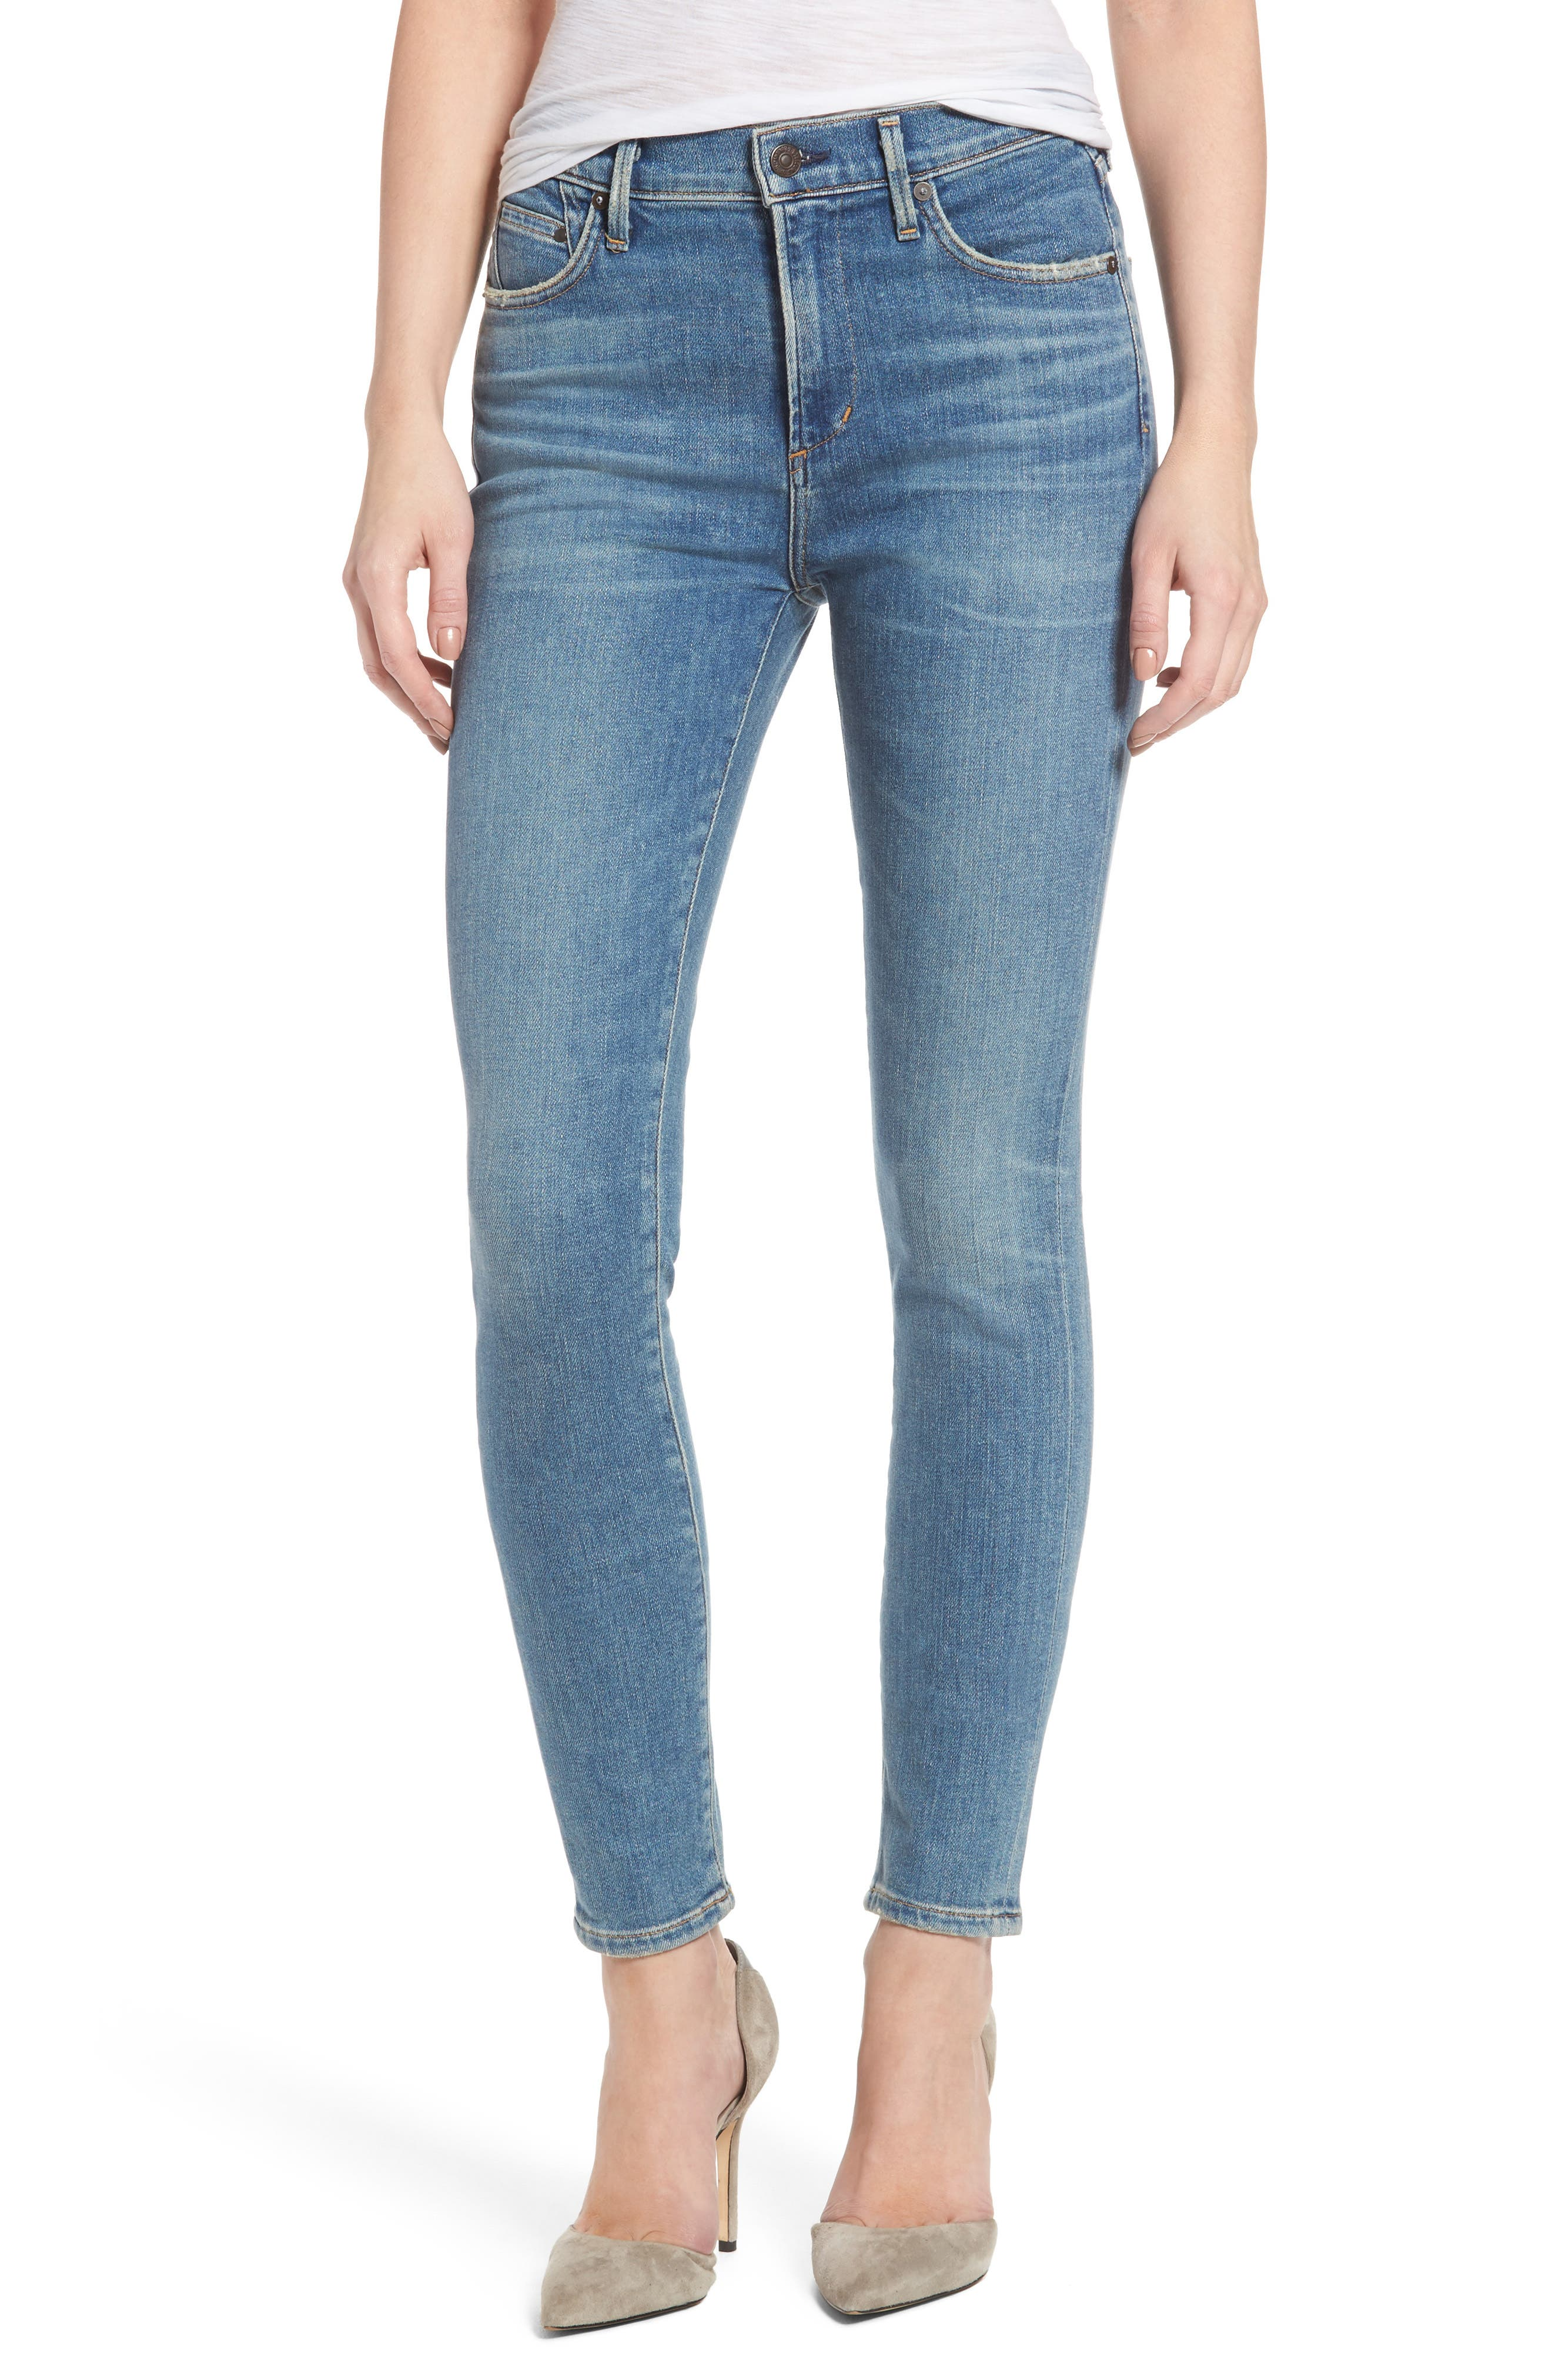 Alternate Image 1 Selected - Citizens of Humanity Rocket High Waist Skinny Jeans (Reyes)